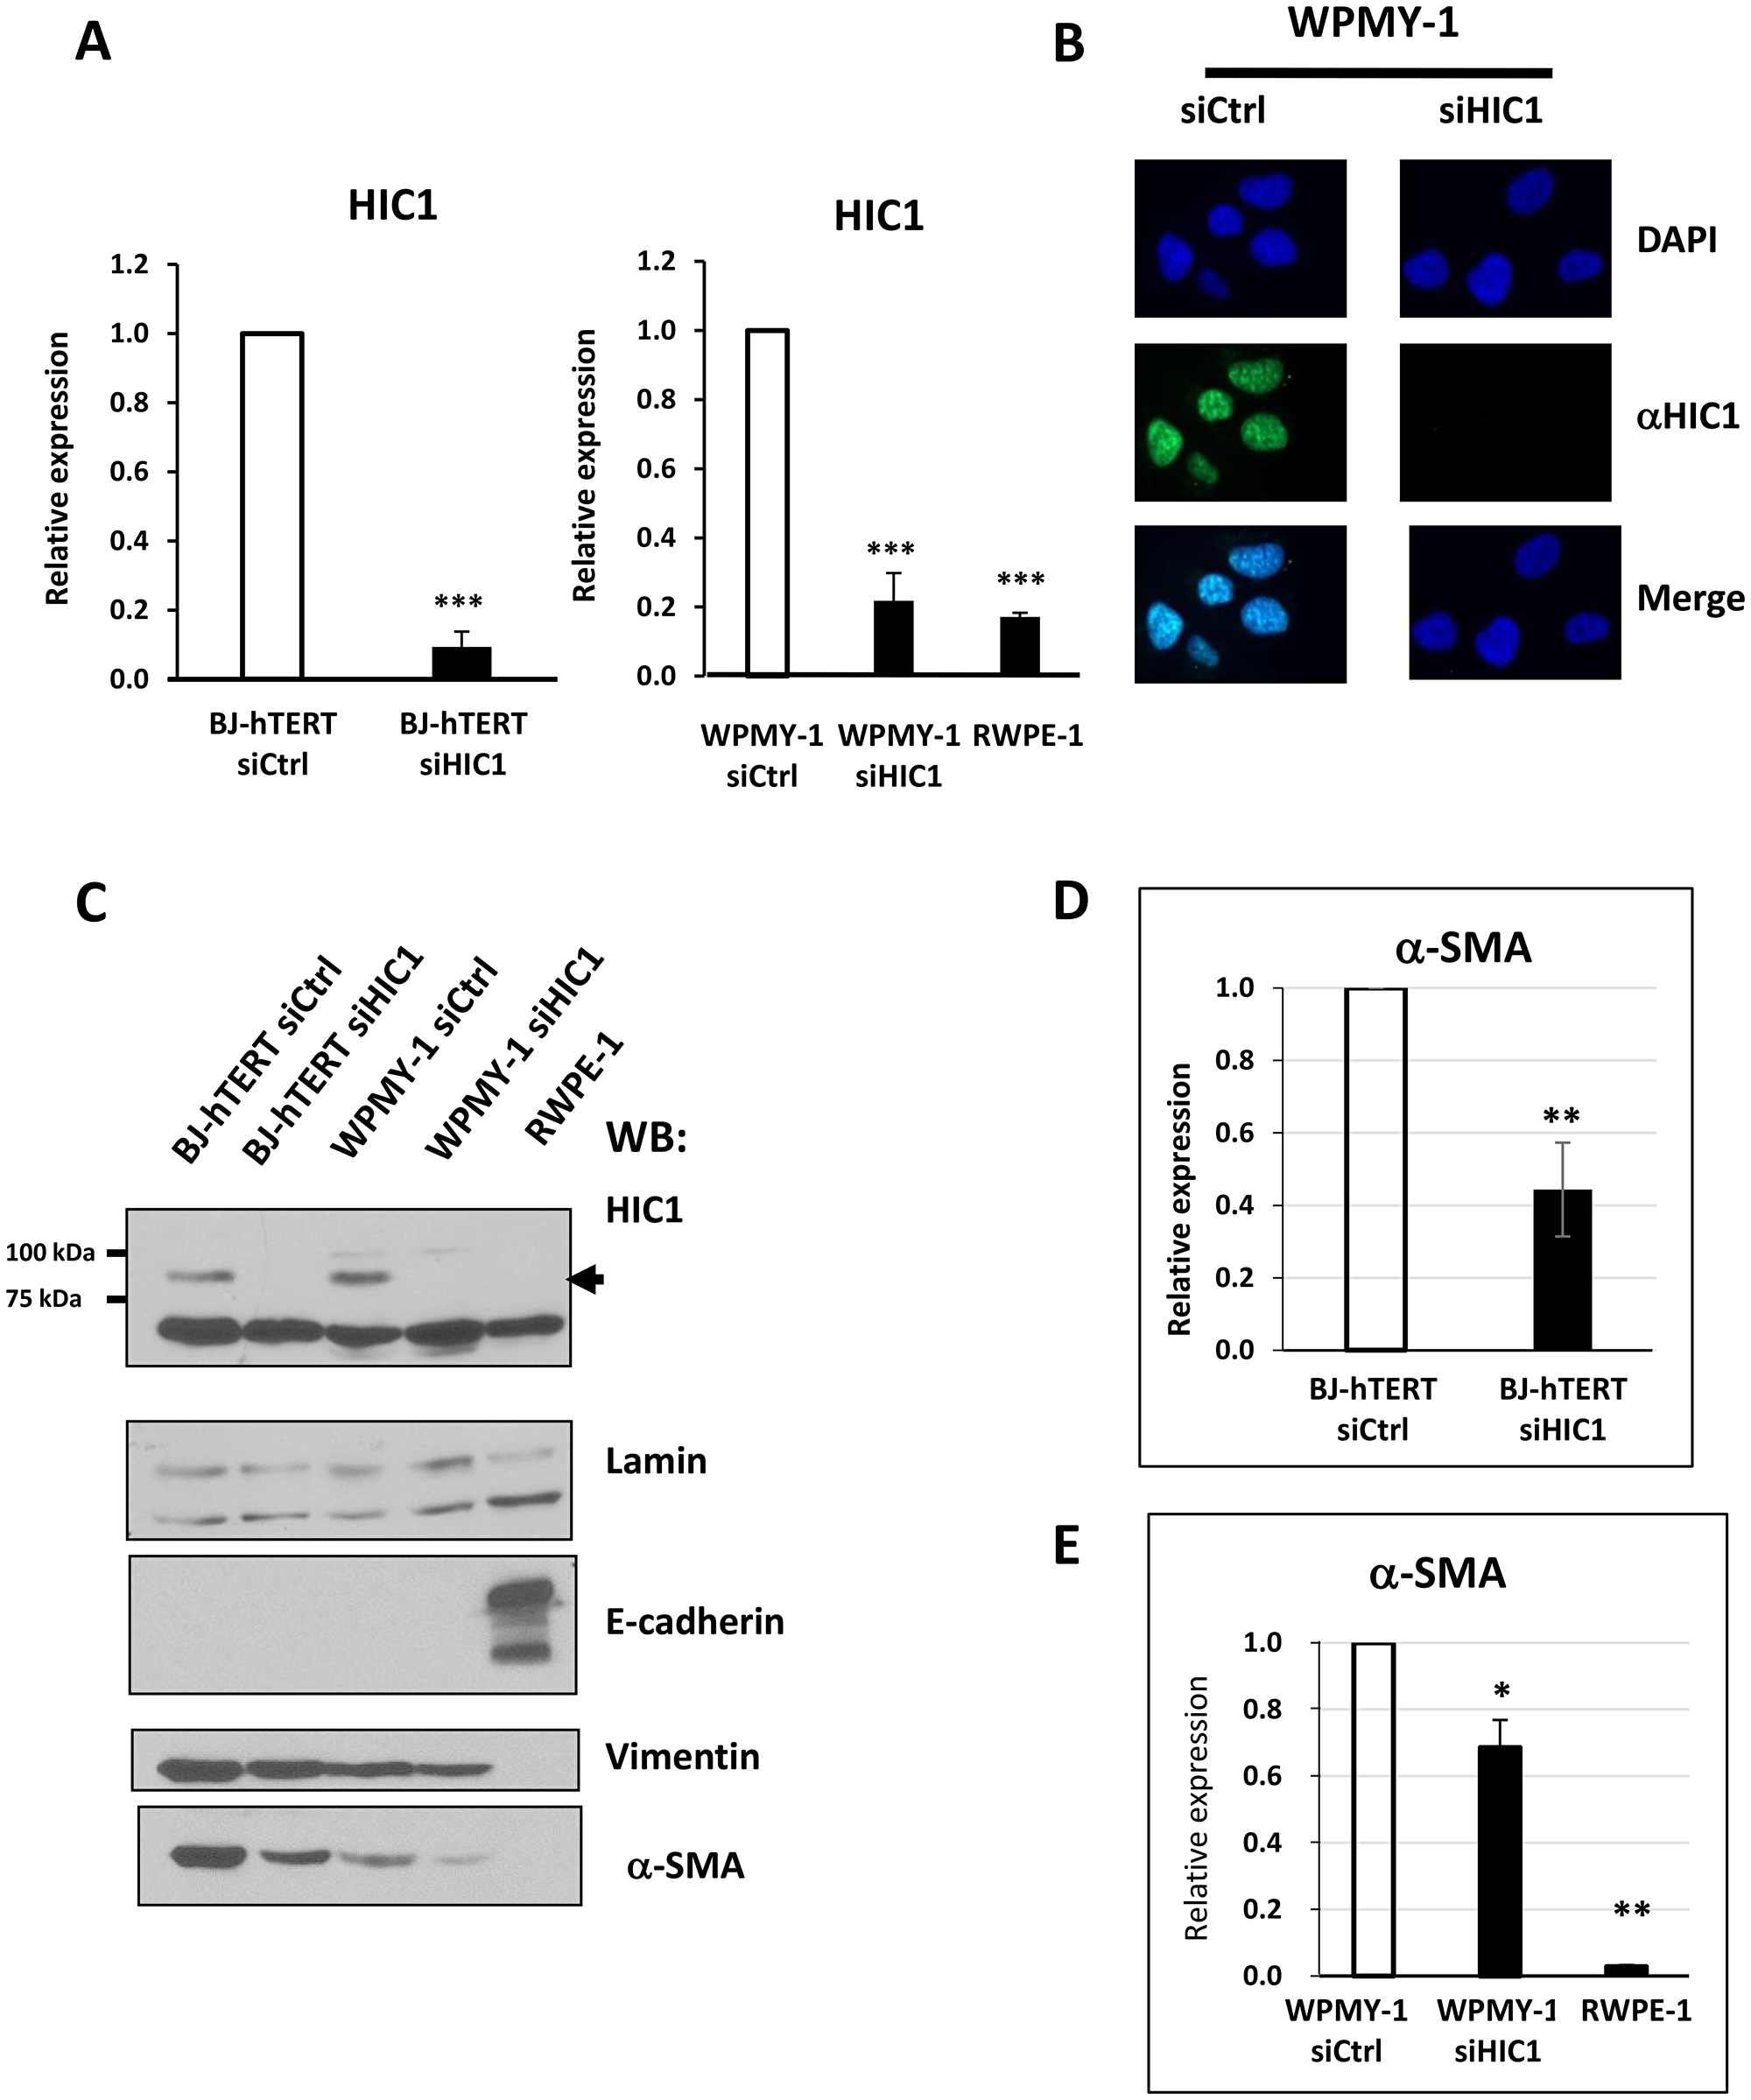 Analyses of HIC1 expression in the myofibroblastic cell line WPMY-1 compared to the epithelial cell line RWPE1.